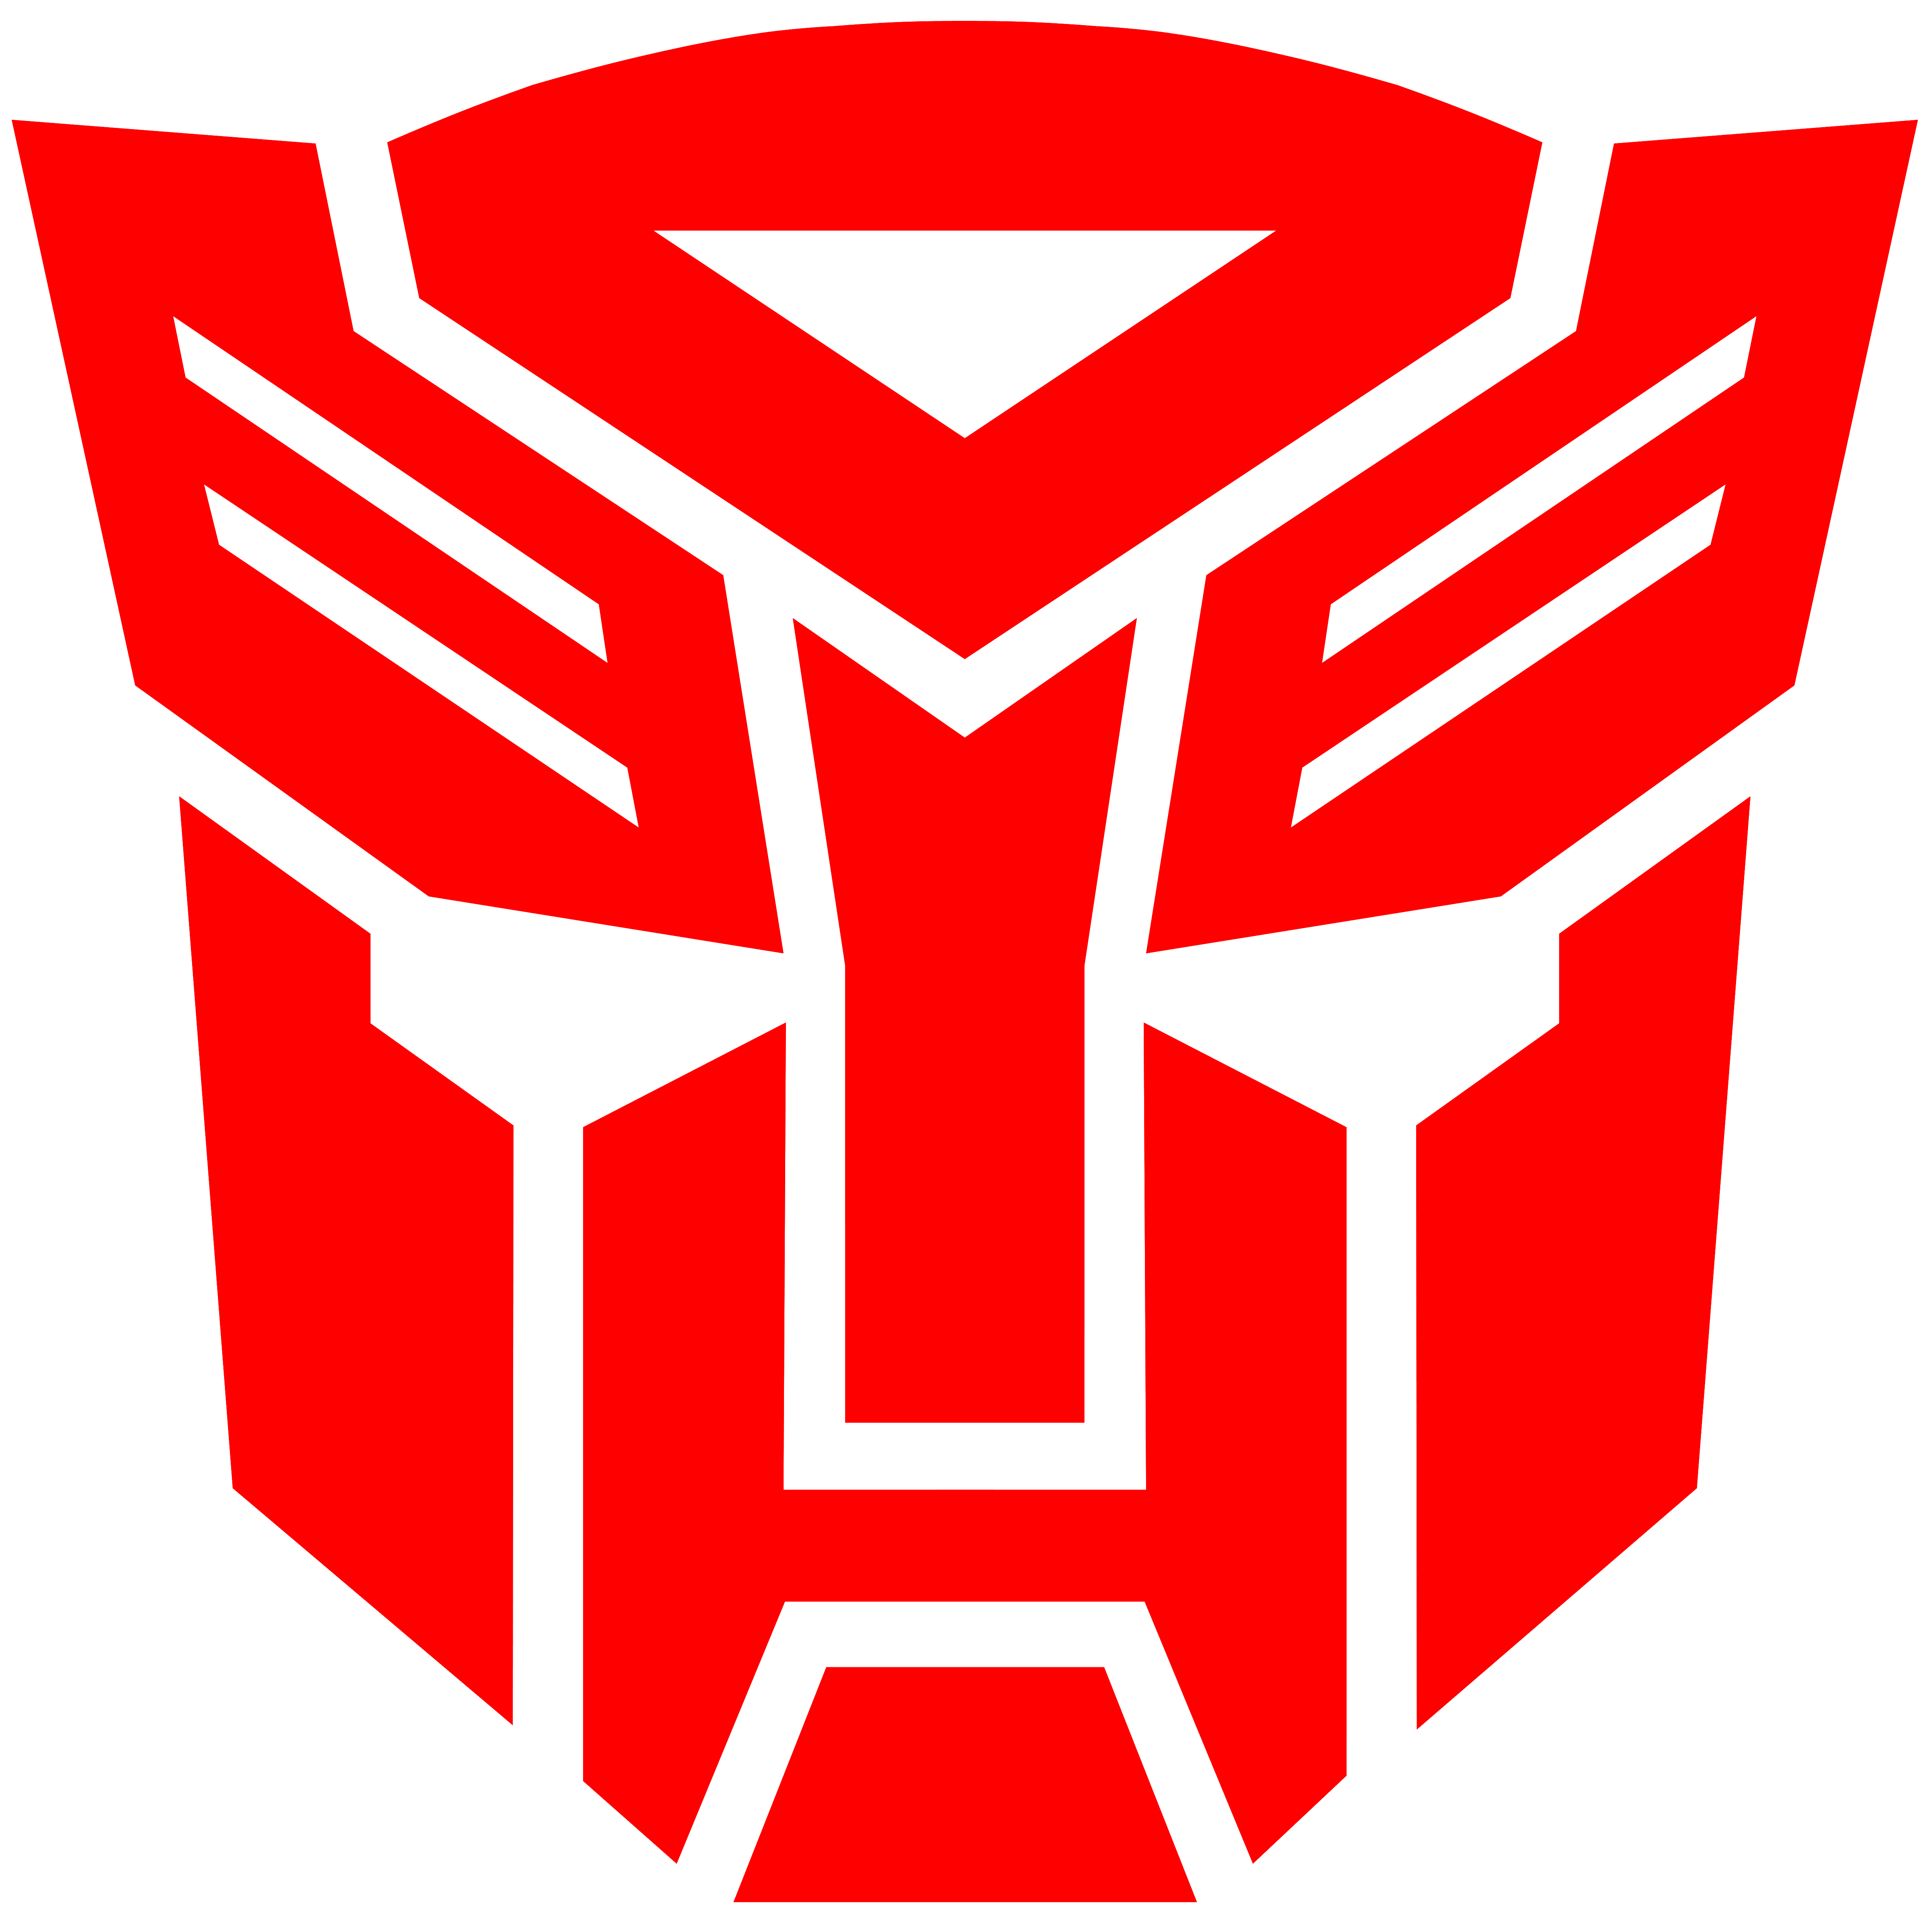 Transformers clip clipart. Transformer group with items